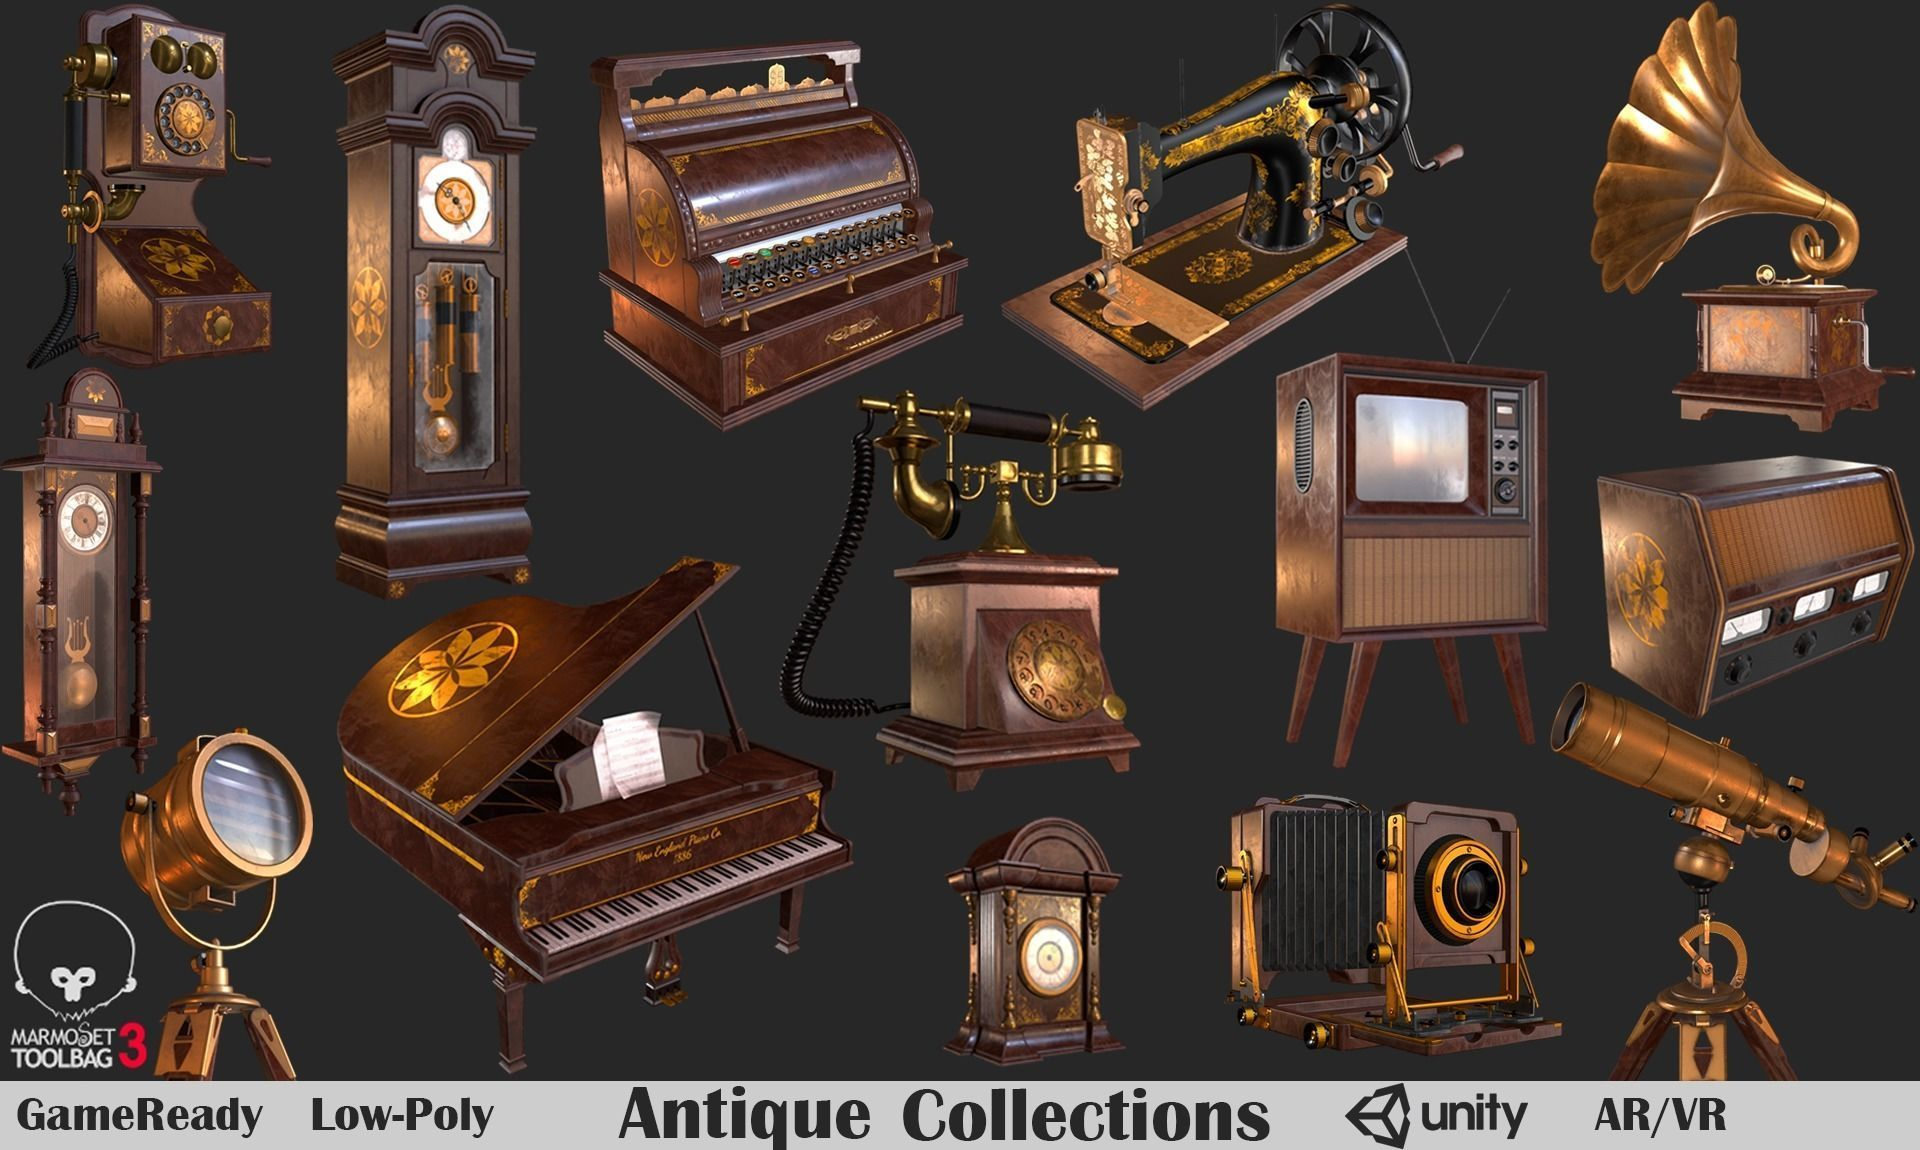 Antique Collections PBR